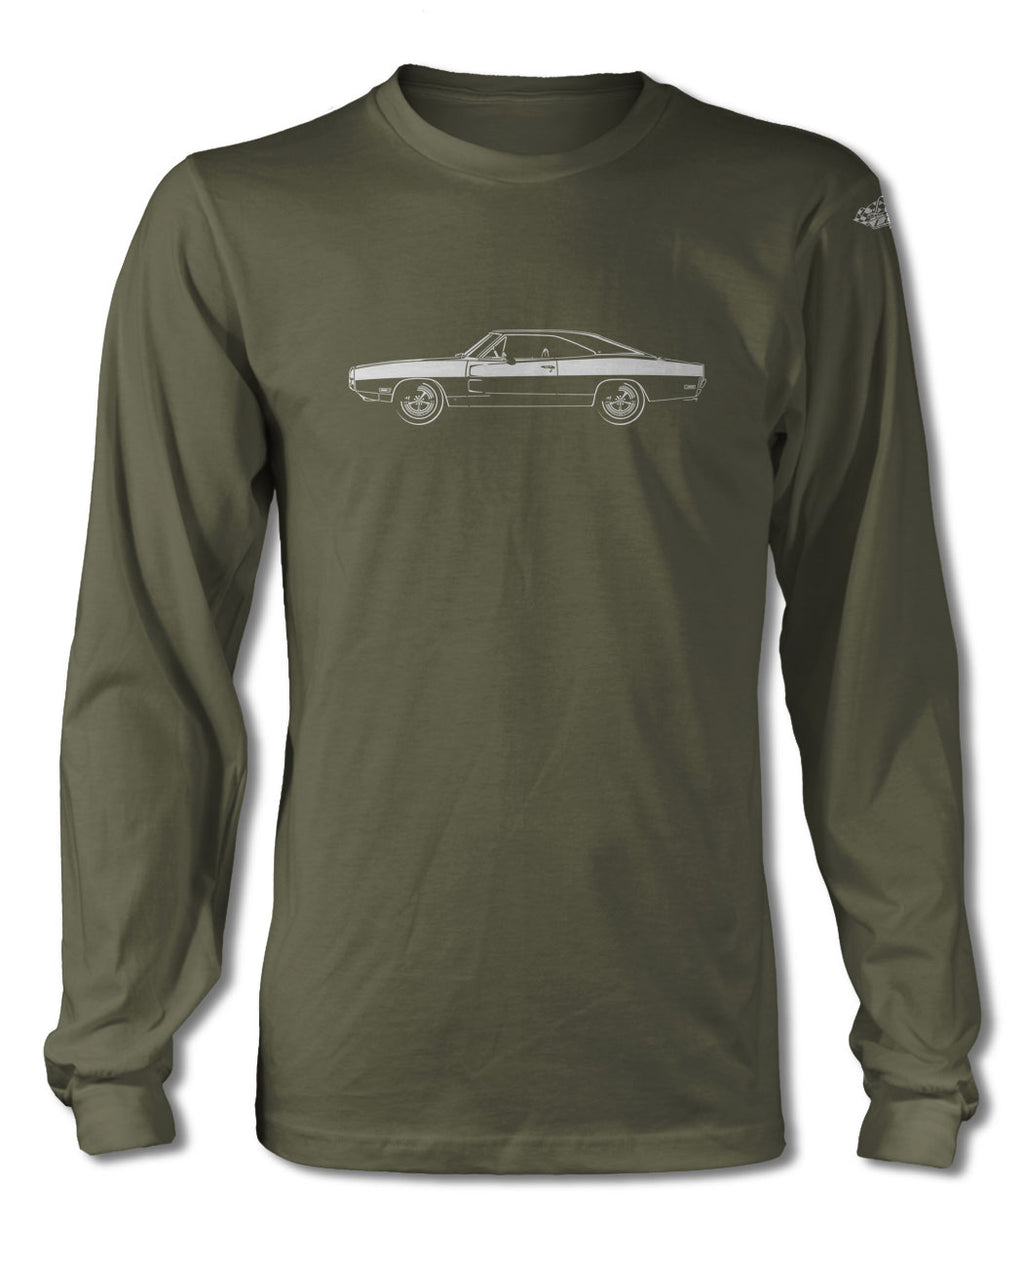 1970 Dodge Charger Base Hardtop T-Shirt - Long Sleeves - Side View